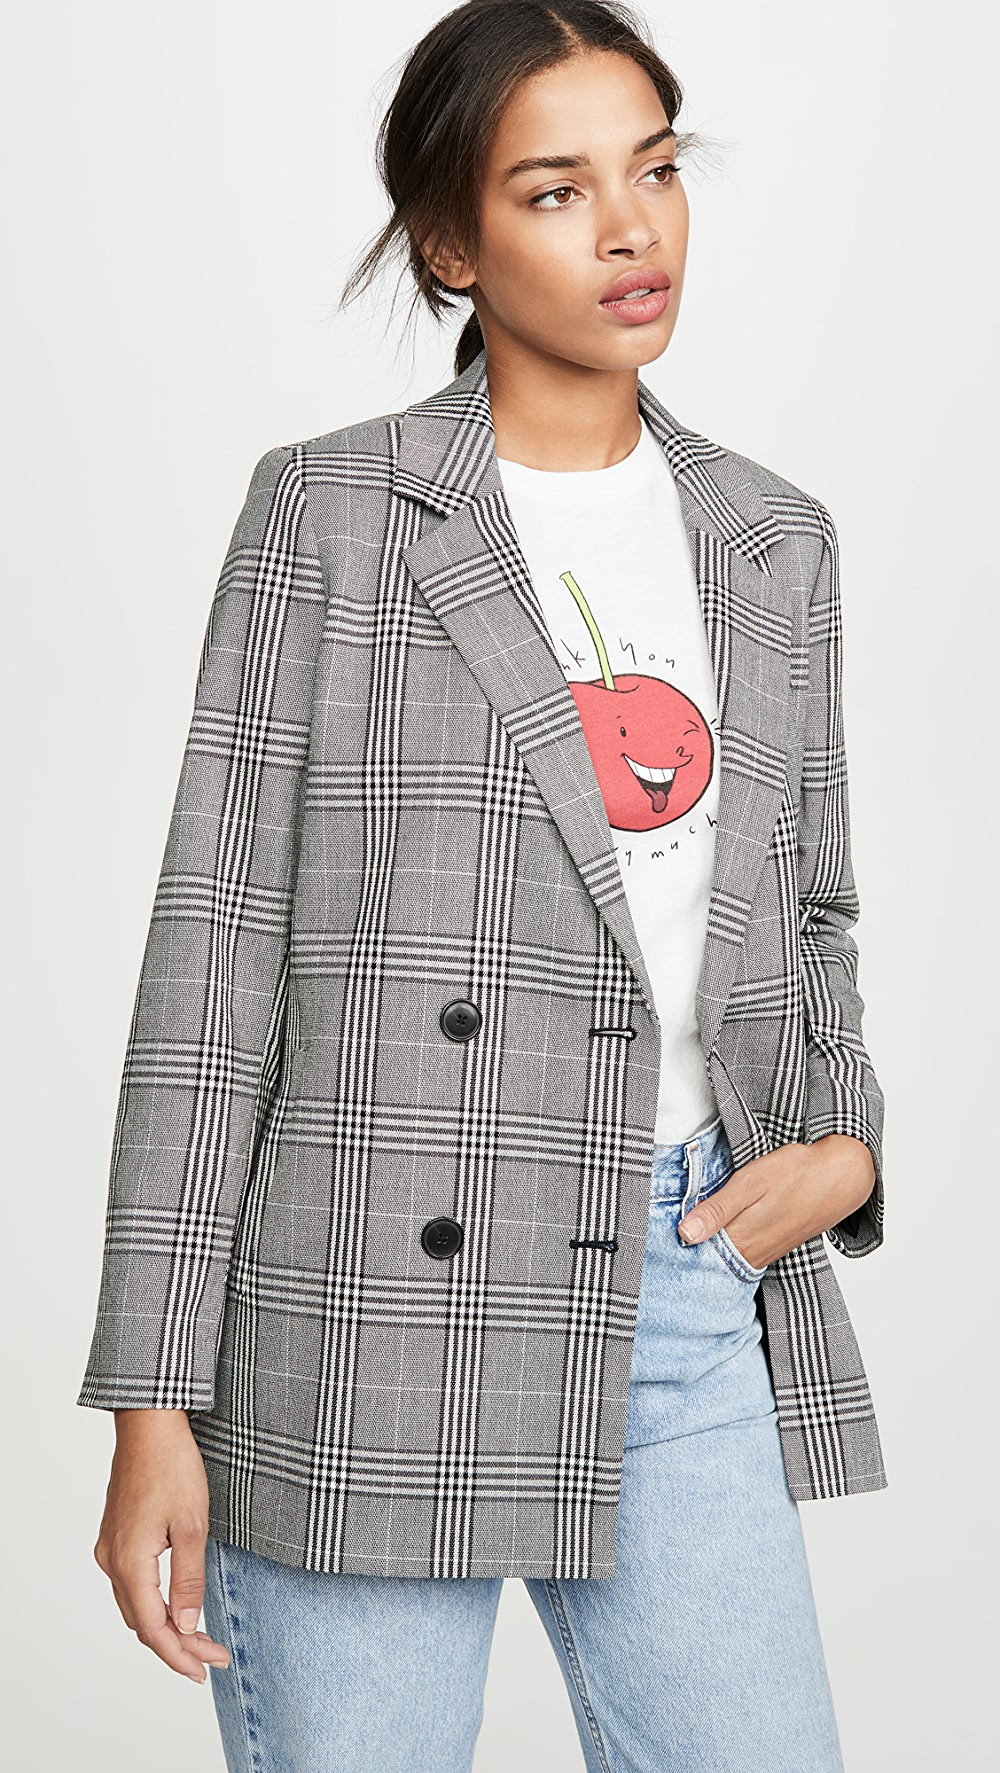 Amiable Madewell - Caldwell Double Breasted Blazer Promoting Health And Curing Diseases